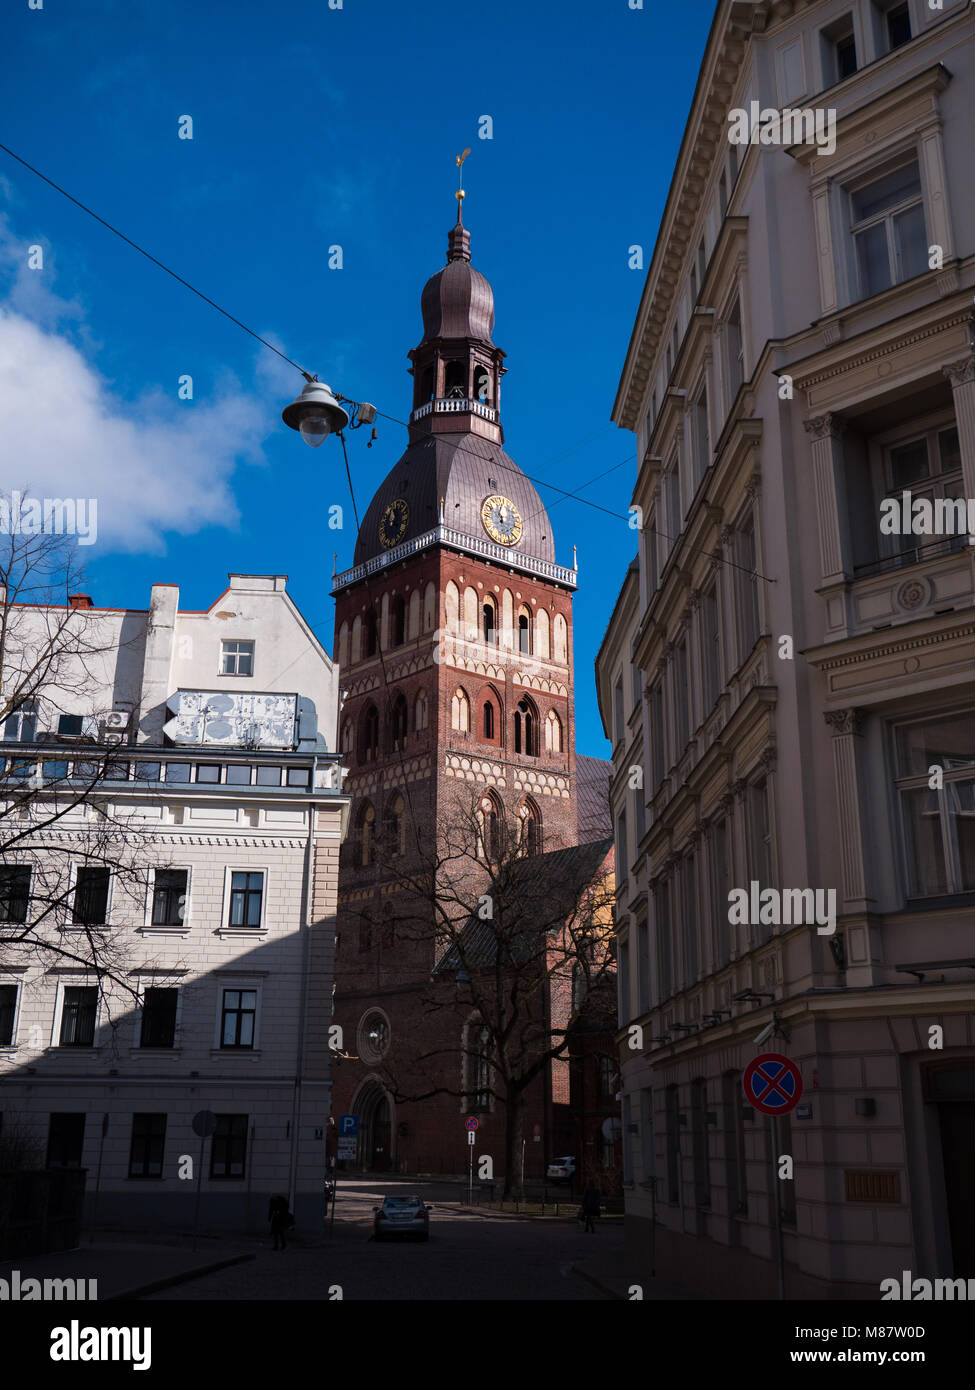 Riga Dome Cathedral, build in 12th century. - Stock Image